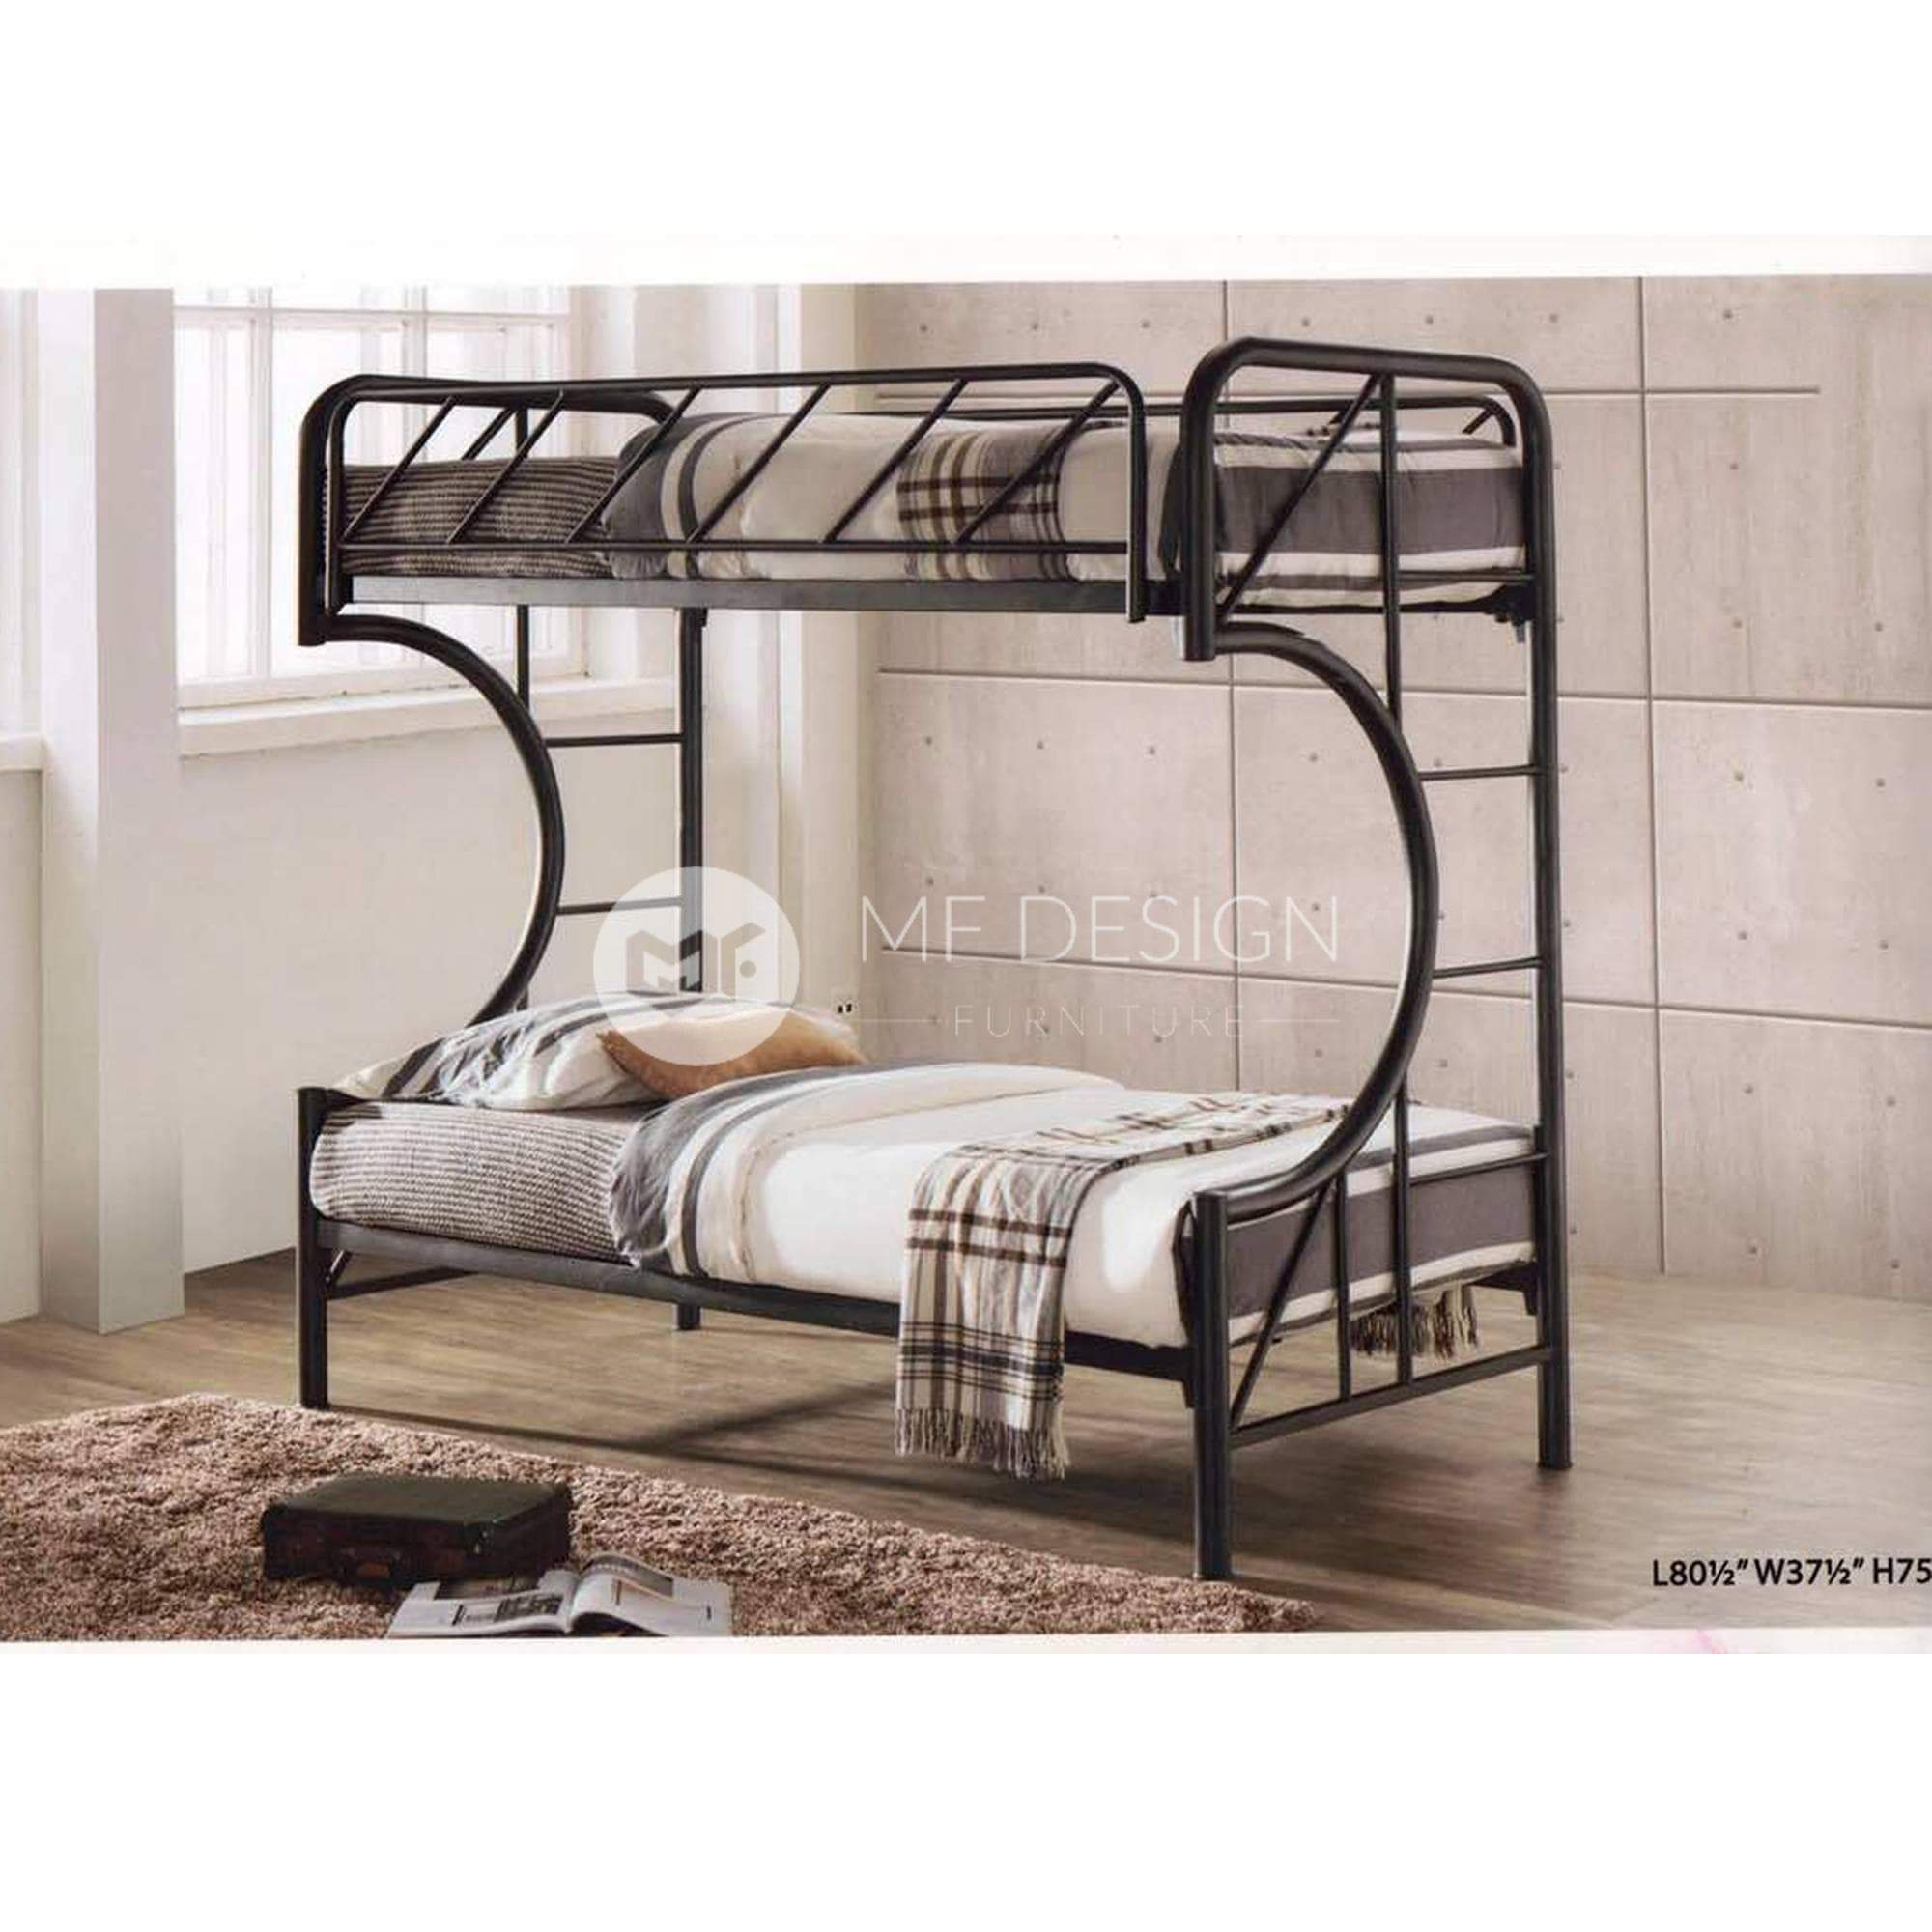 13 bed MF DESIGN MARK DOUBLE DECKER